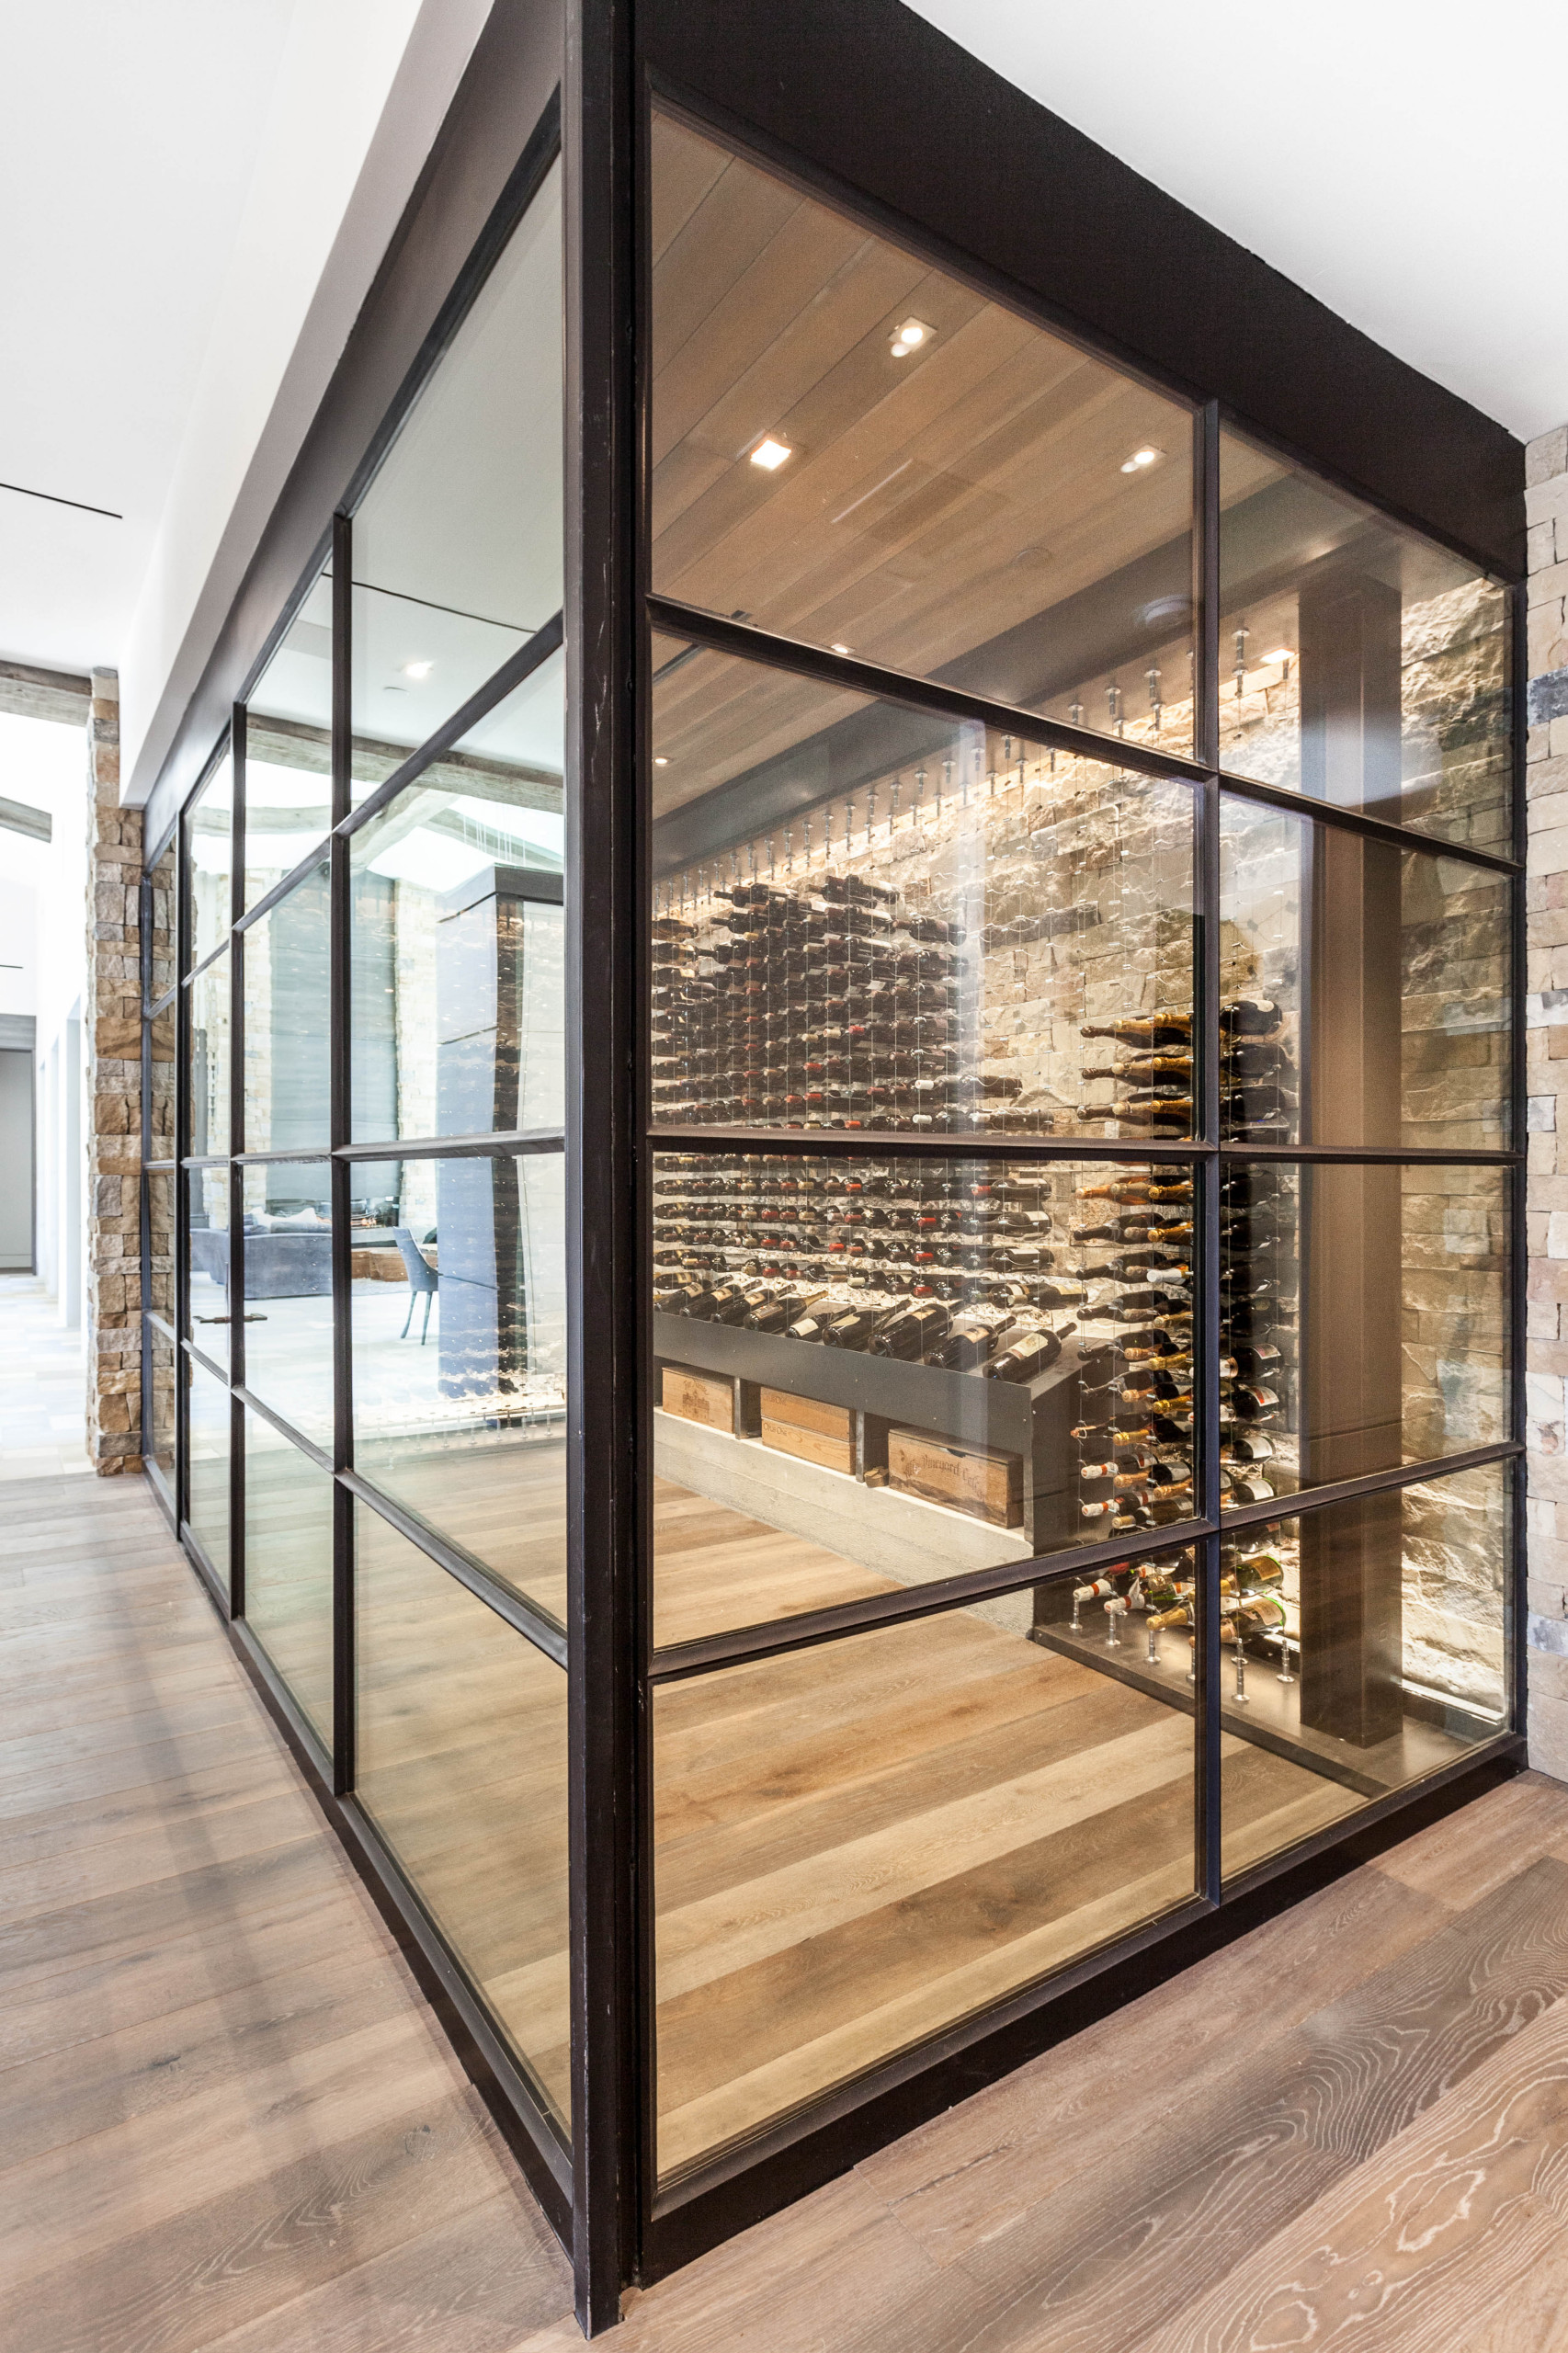 75 Beautiful Modern Wine Cellar Pictures Ideas January 2021 Houzz